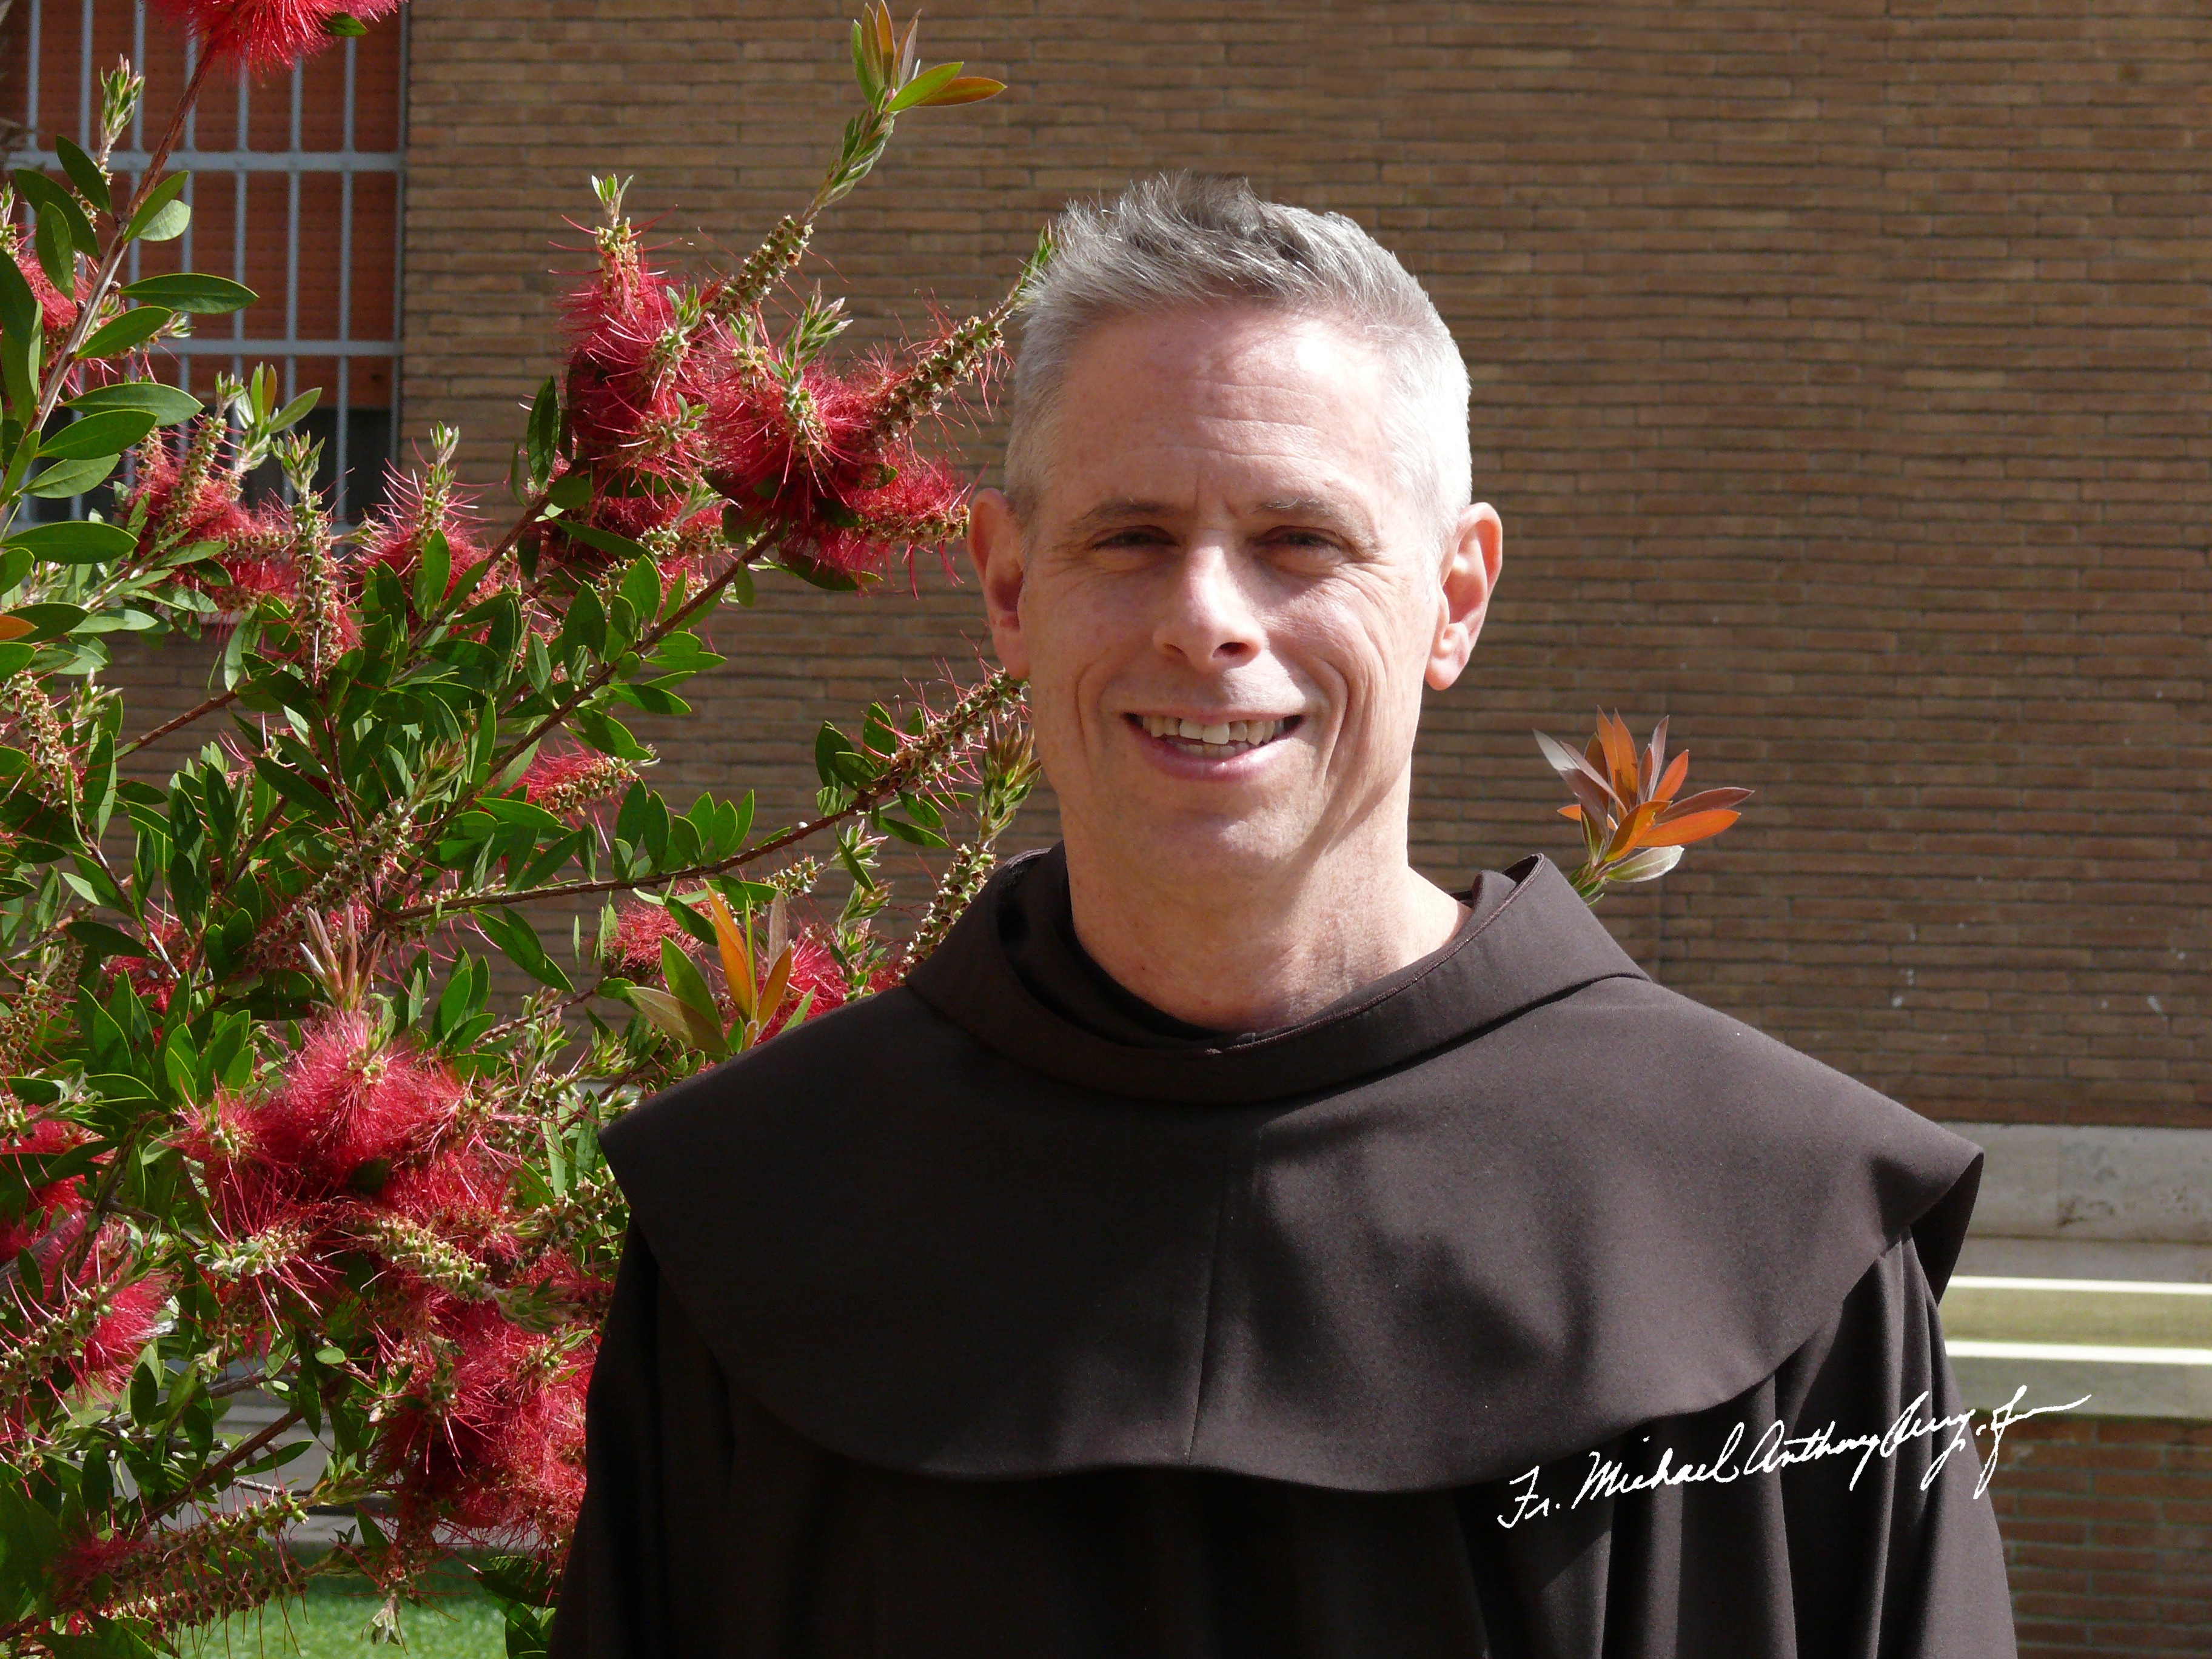 Fr. Micheal Perry